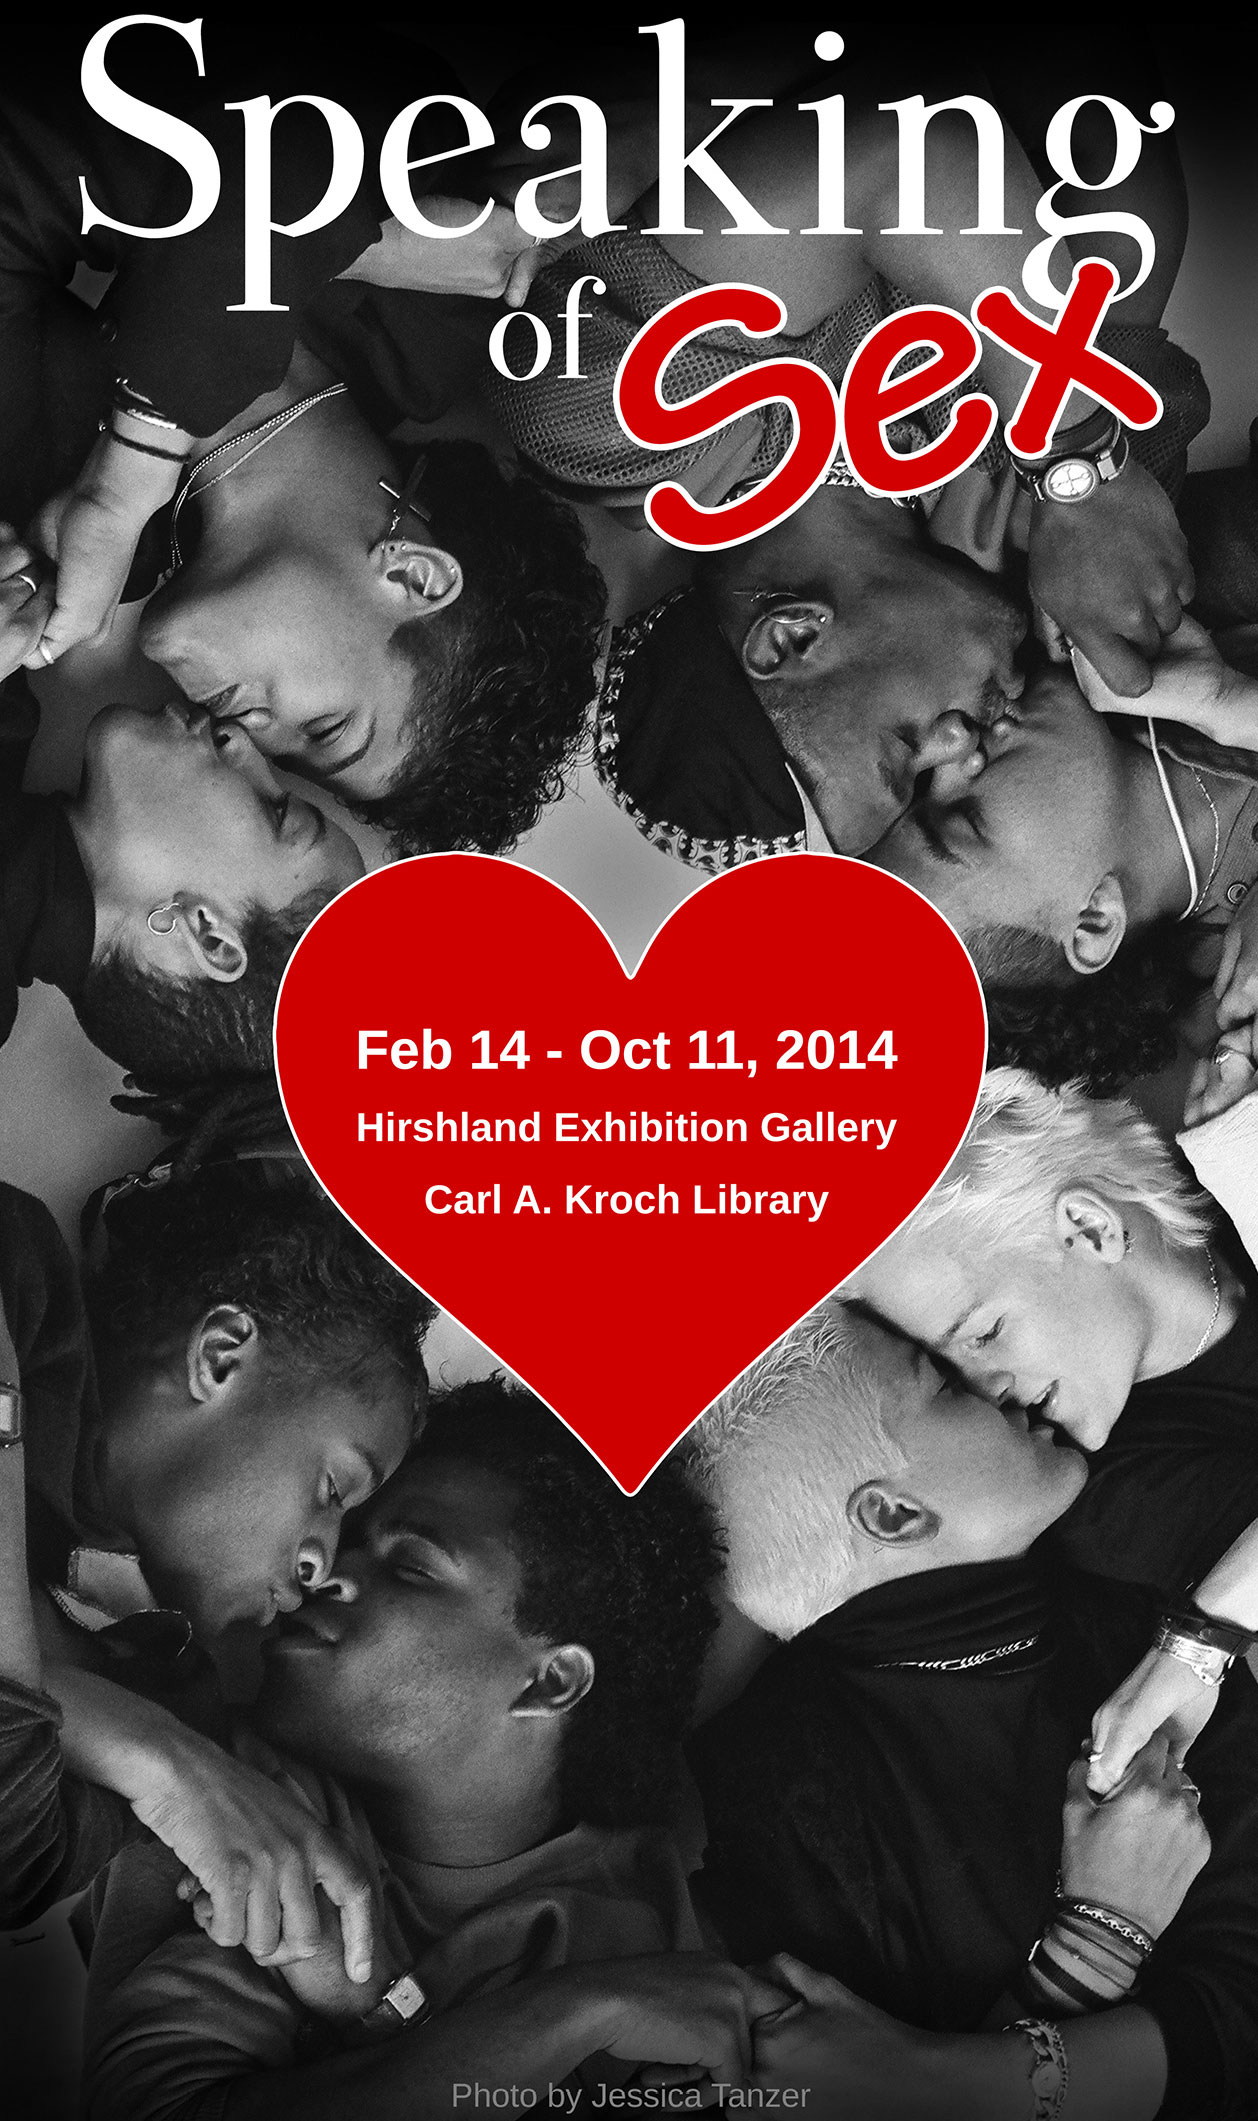 Speaking of Sex, Feb. 14 to Oct. 11, 2014 - Hirshland Exhibit Gallery, Carl A. Kroch Library